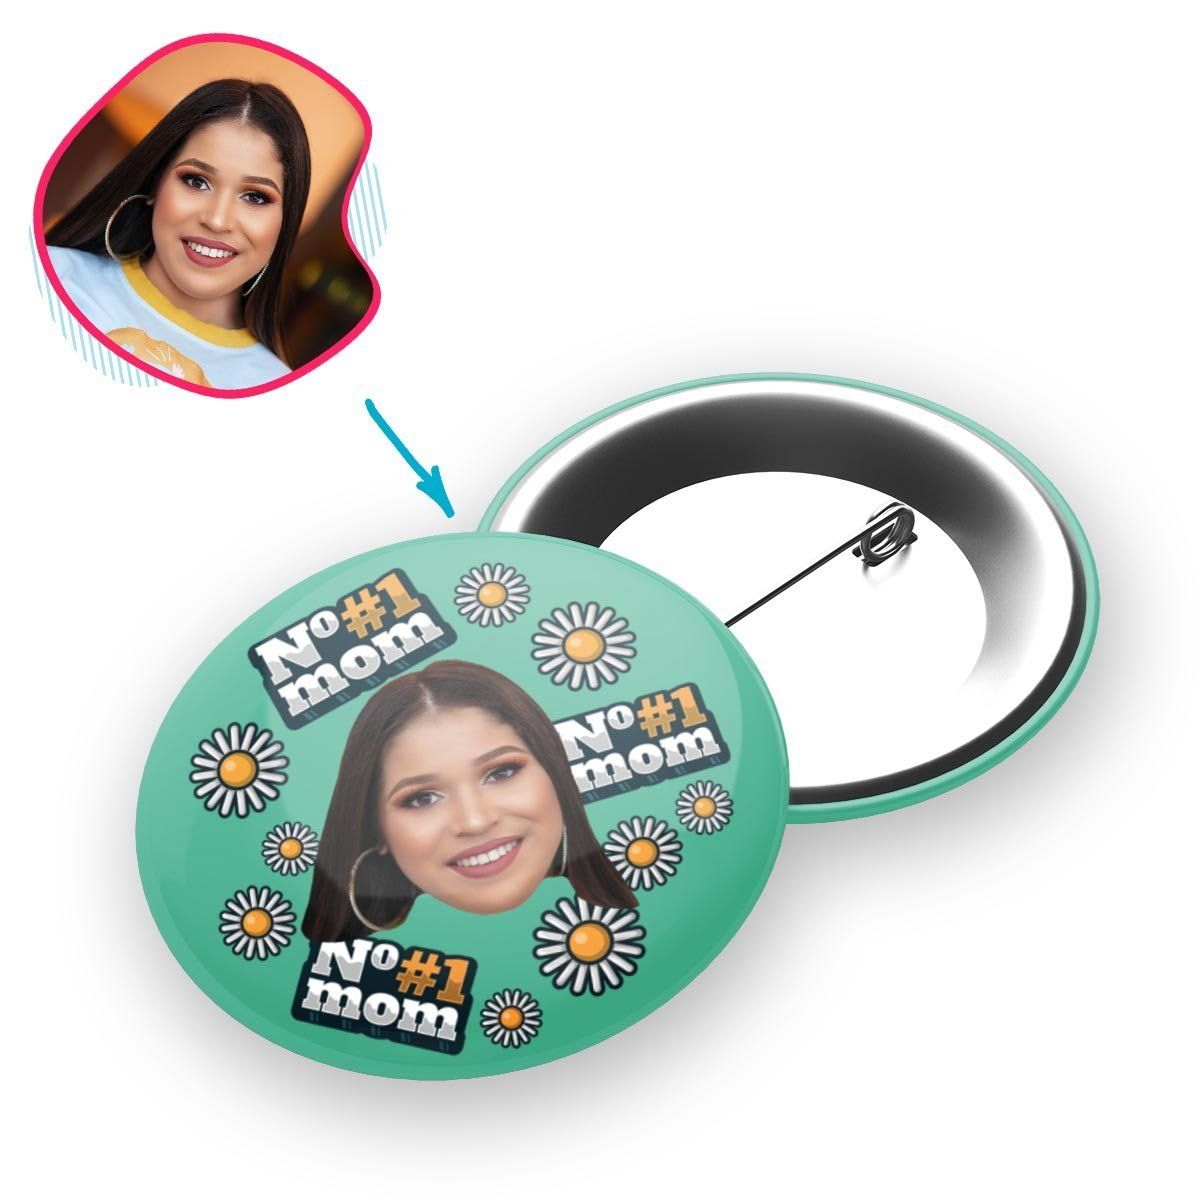 mint #1 Mom pin personalized with photo of face printed on it